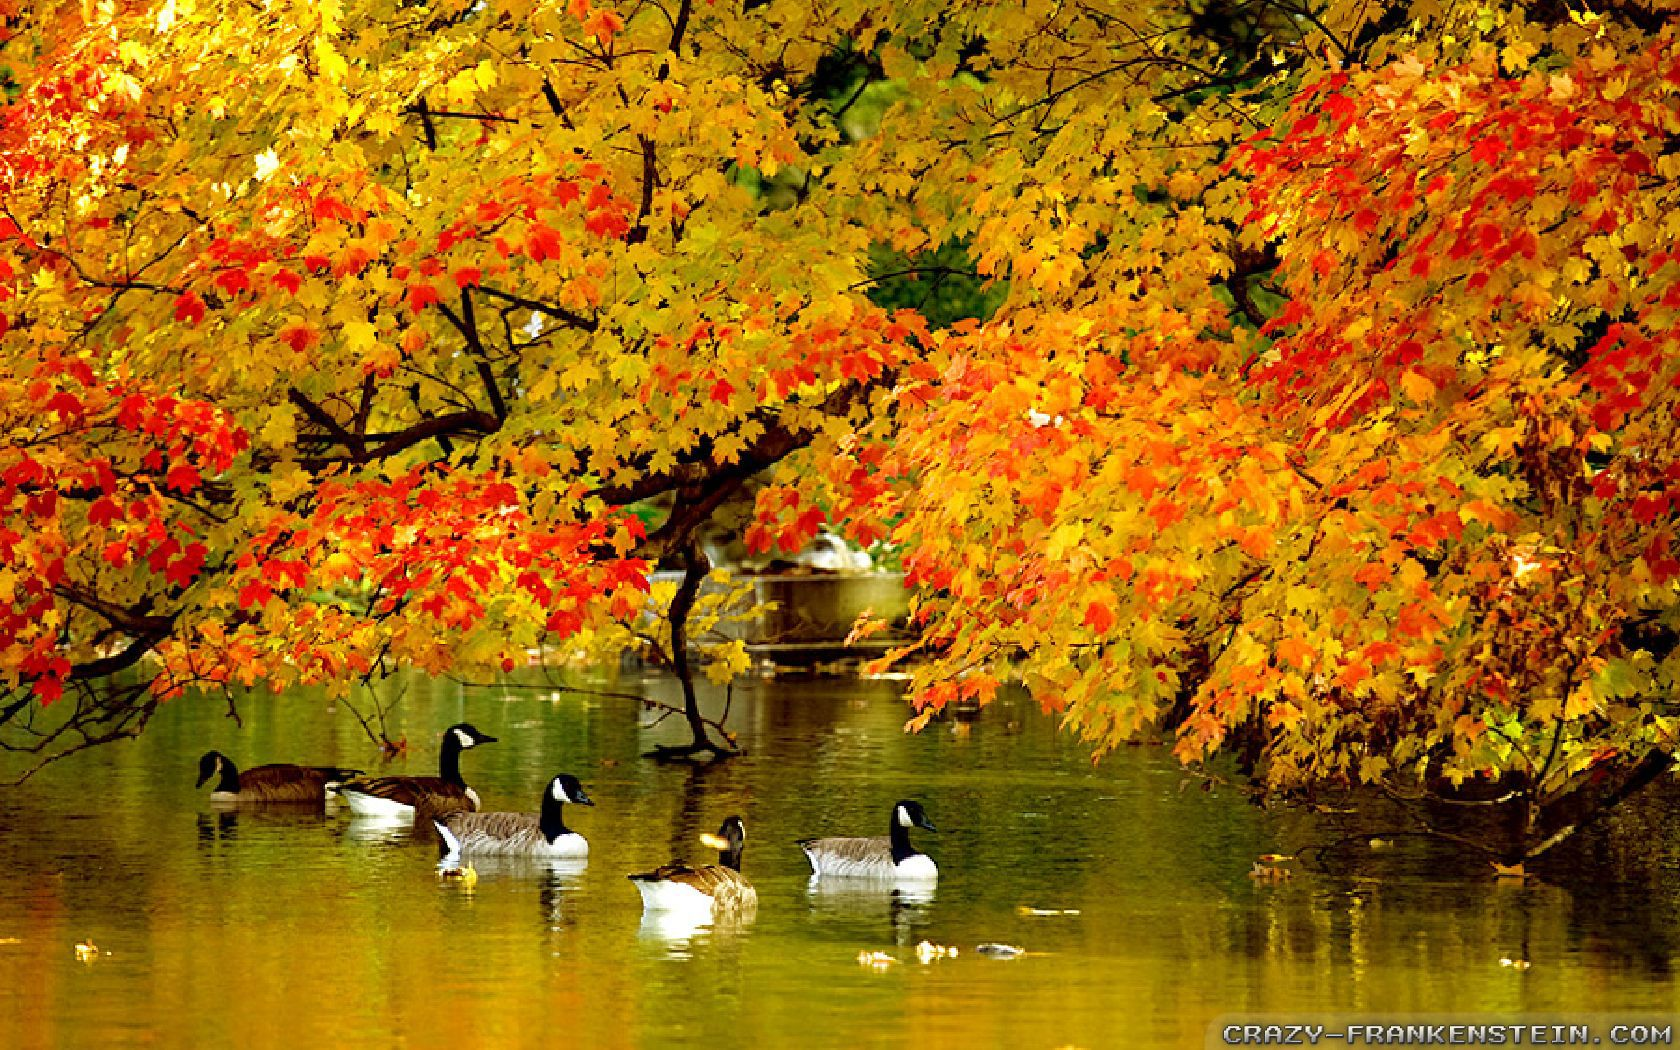 Fall Scenery Wallpapers Free Autumn In New York Wallpapers Seasonal Crazy Frankenstein